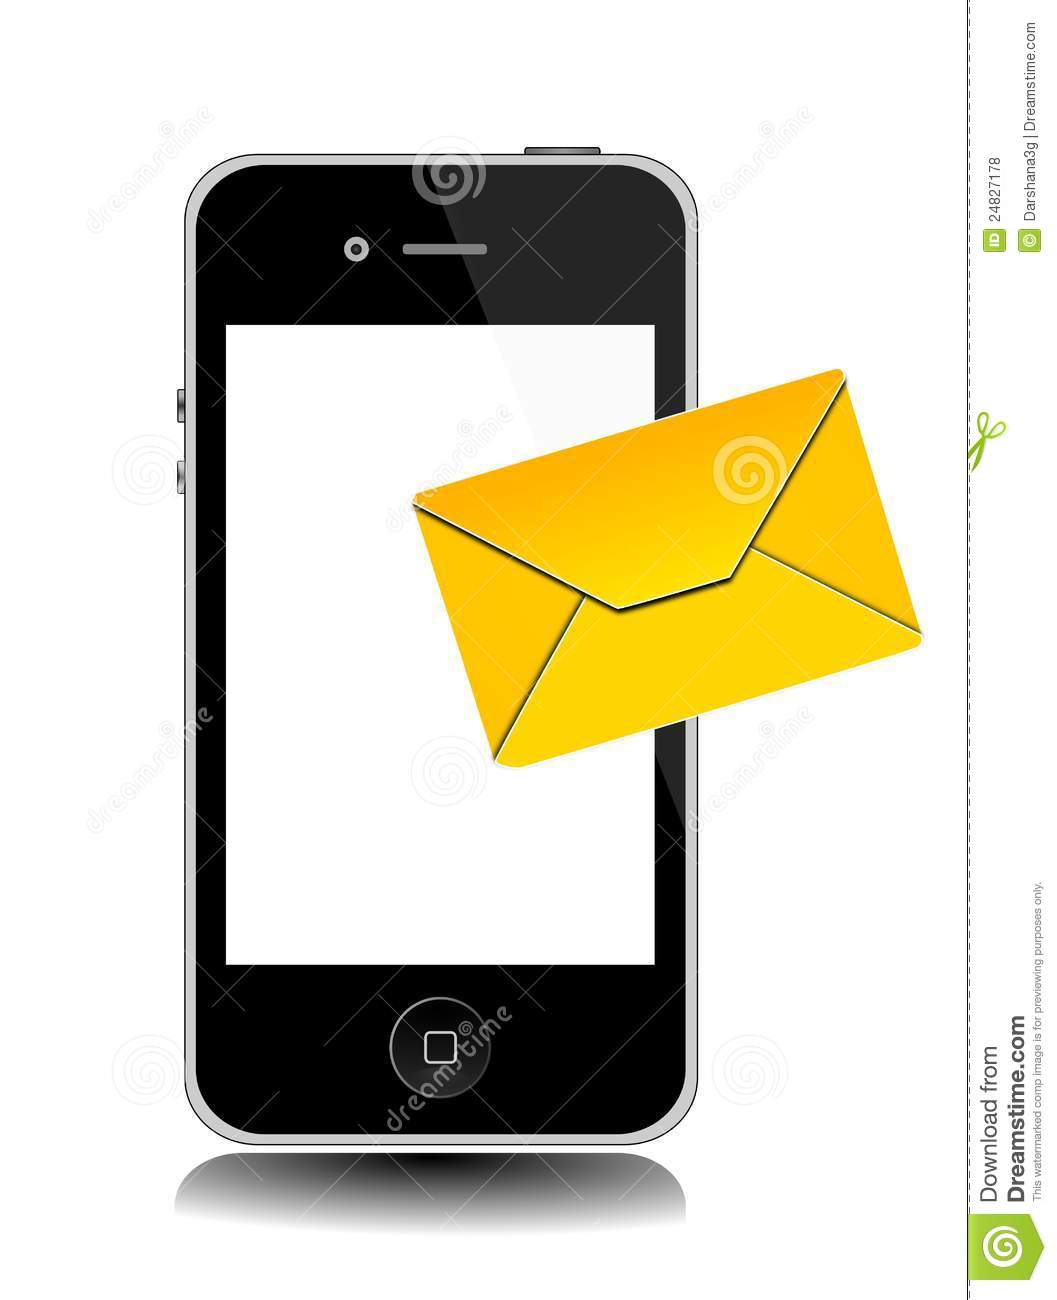 An illustration of IPhone with incoming or outgoing Message icon.